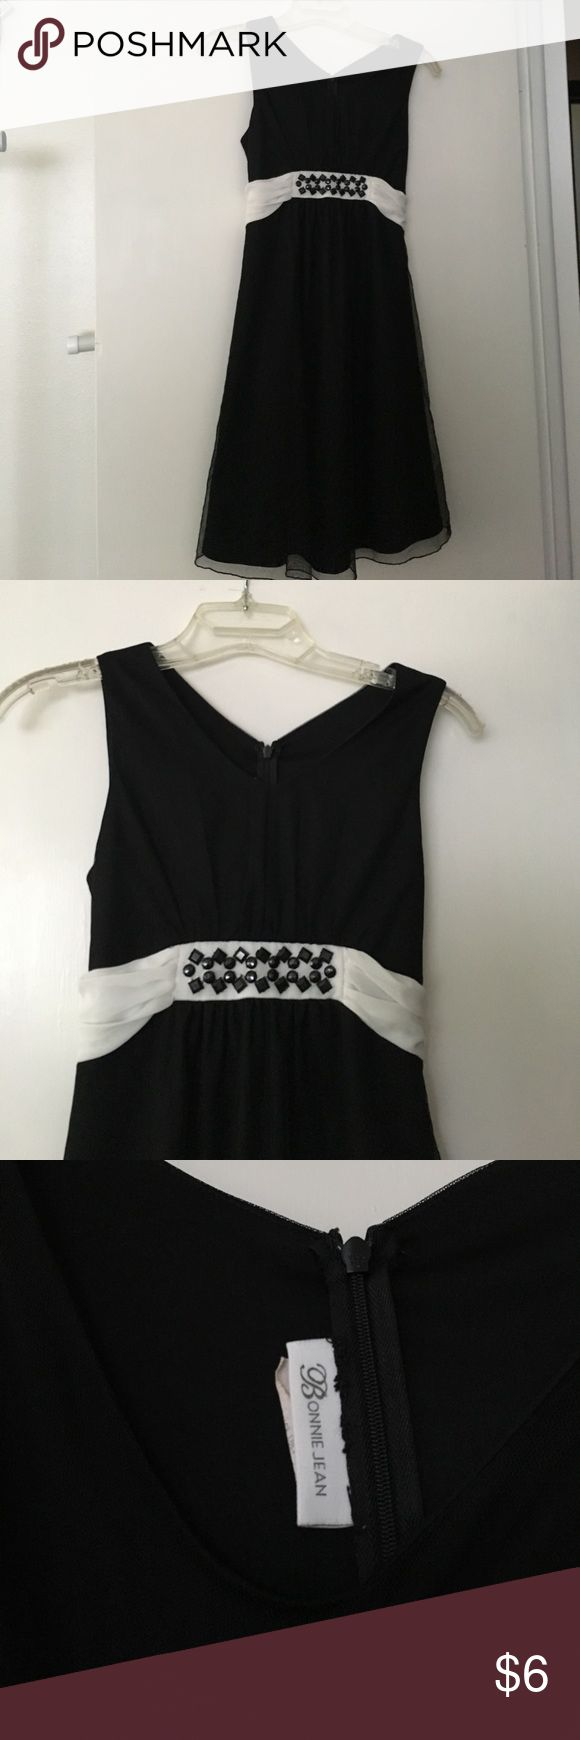 Girls size 14 brand Bonnie Jean Girls size 14 special occasion dress by Bonnie Jean. Black and white with bow that ties in back. Gems sewn on front. Bonnie Jean Dresses Midi